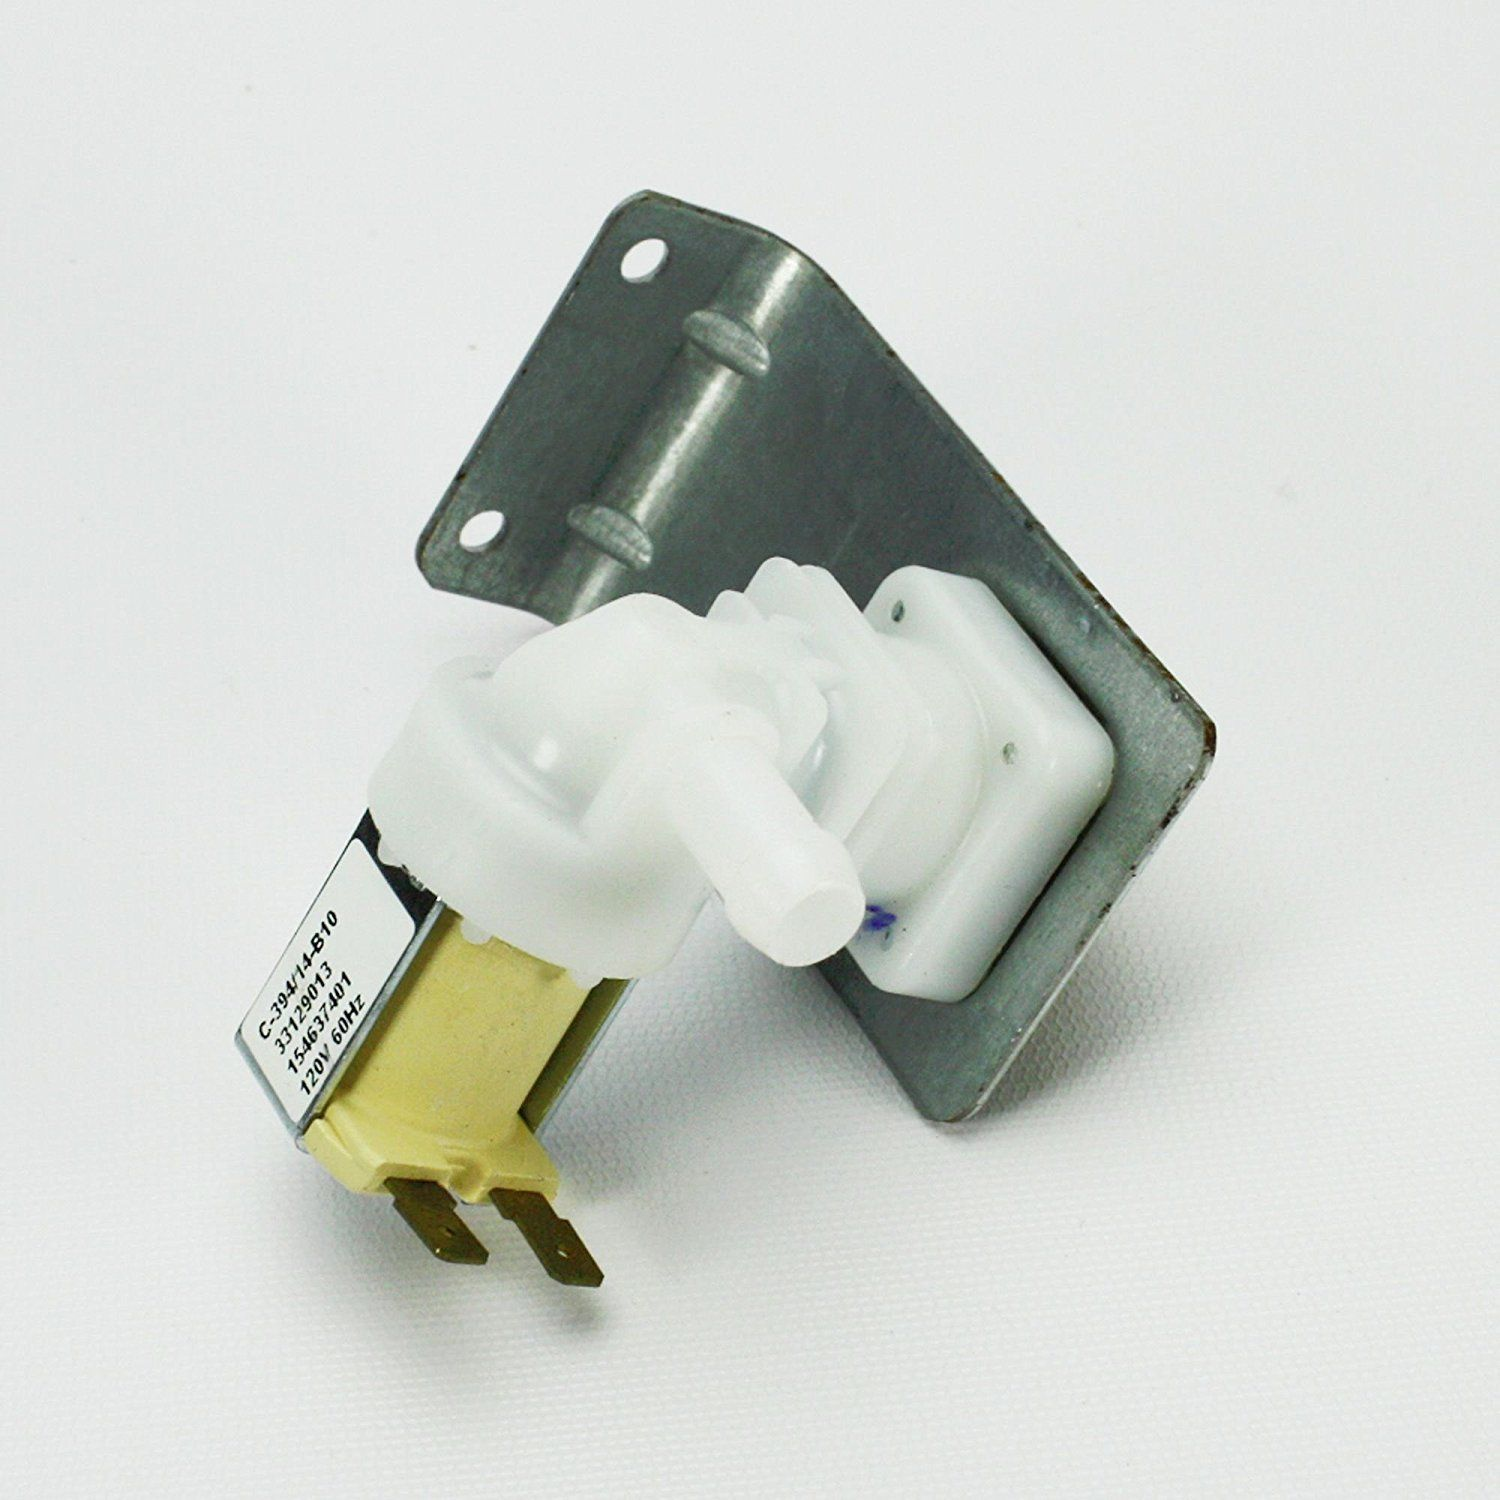 154373301 Dishwasher Fill Valve Repair Part For Frigidaire Electrolux Kenmore And More Read More At The Image Lin Inlet Valve Fill Valve Dishwasher